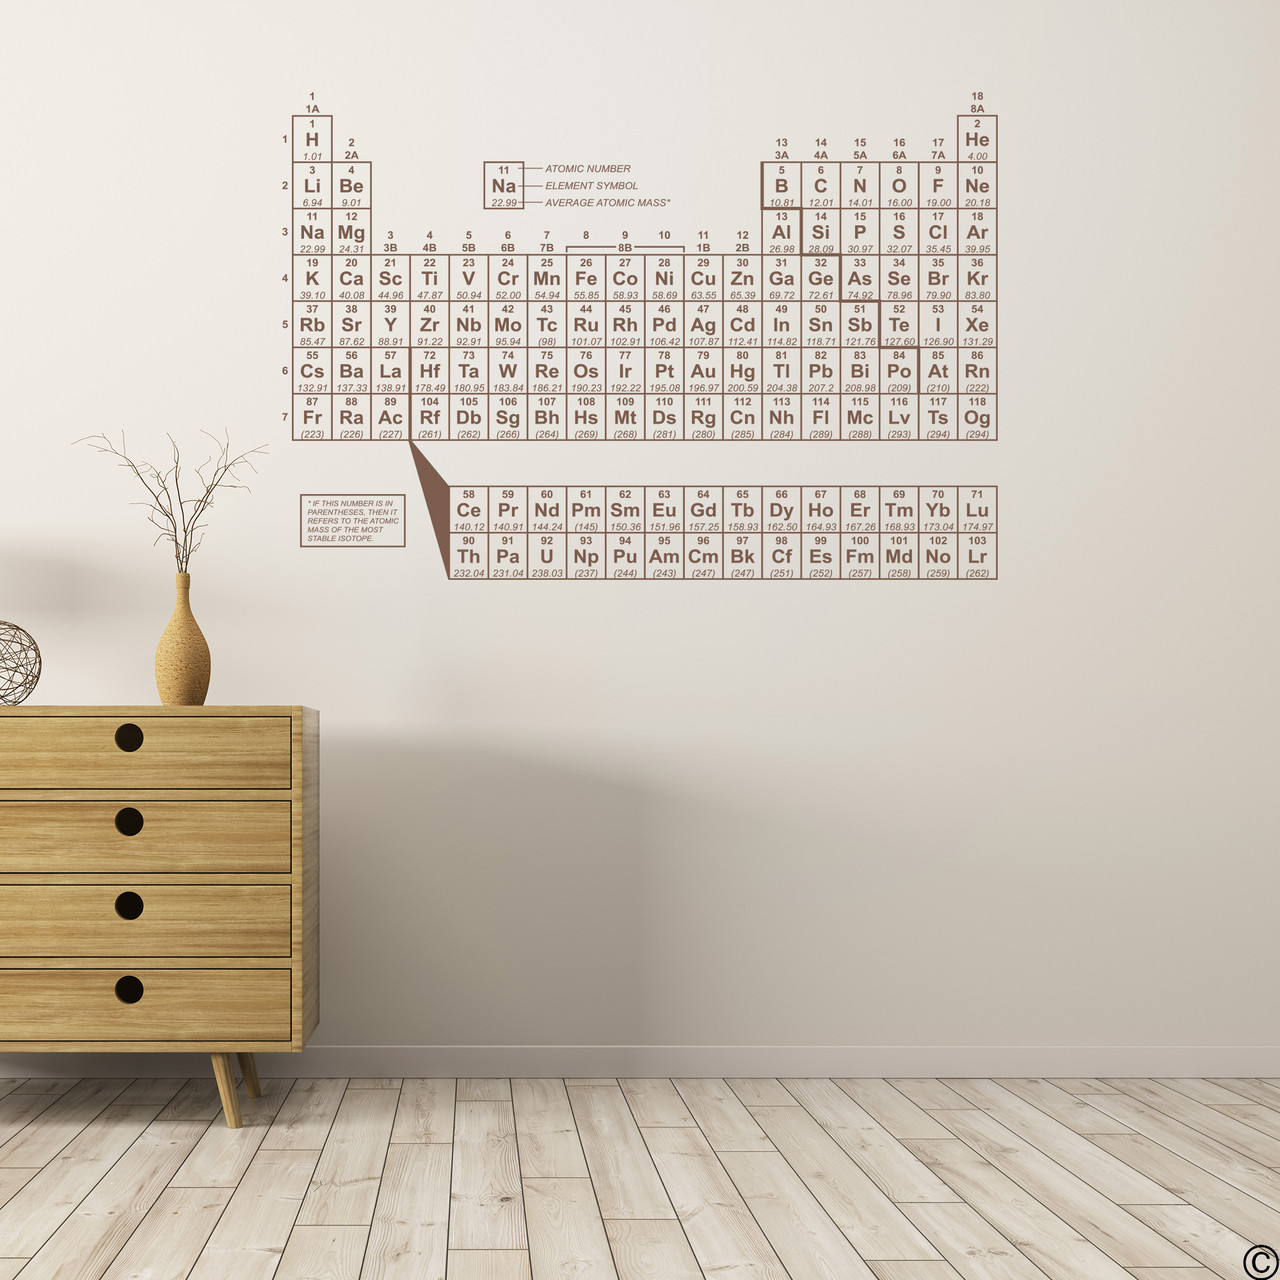 The advance periodic table wall decal for high school science and beyond, shown here on a wall in limited edition eggplant.